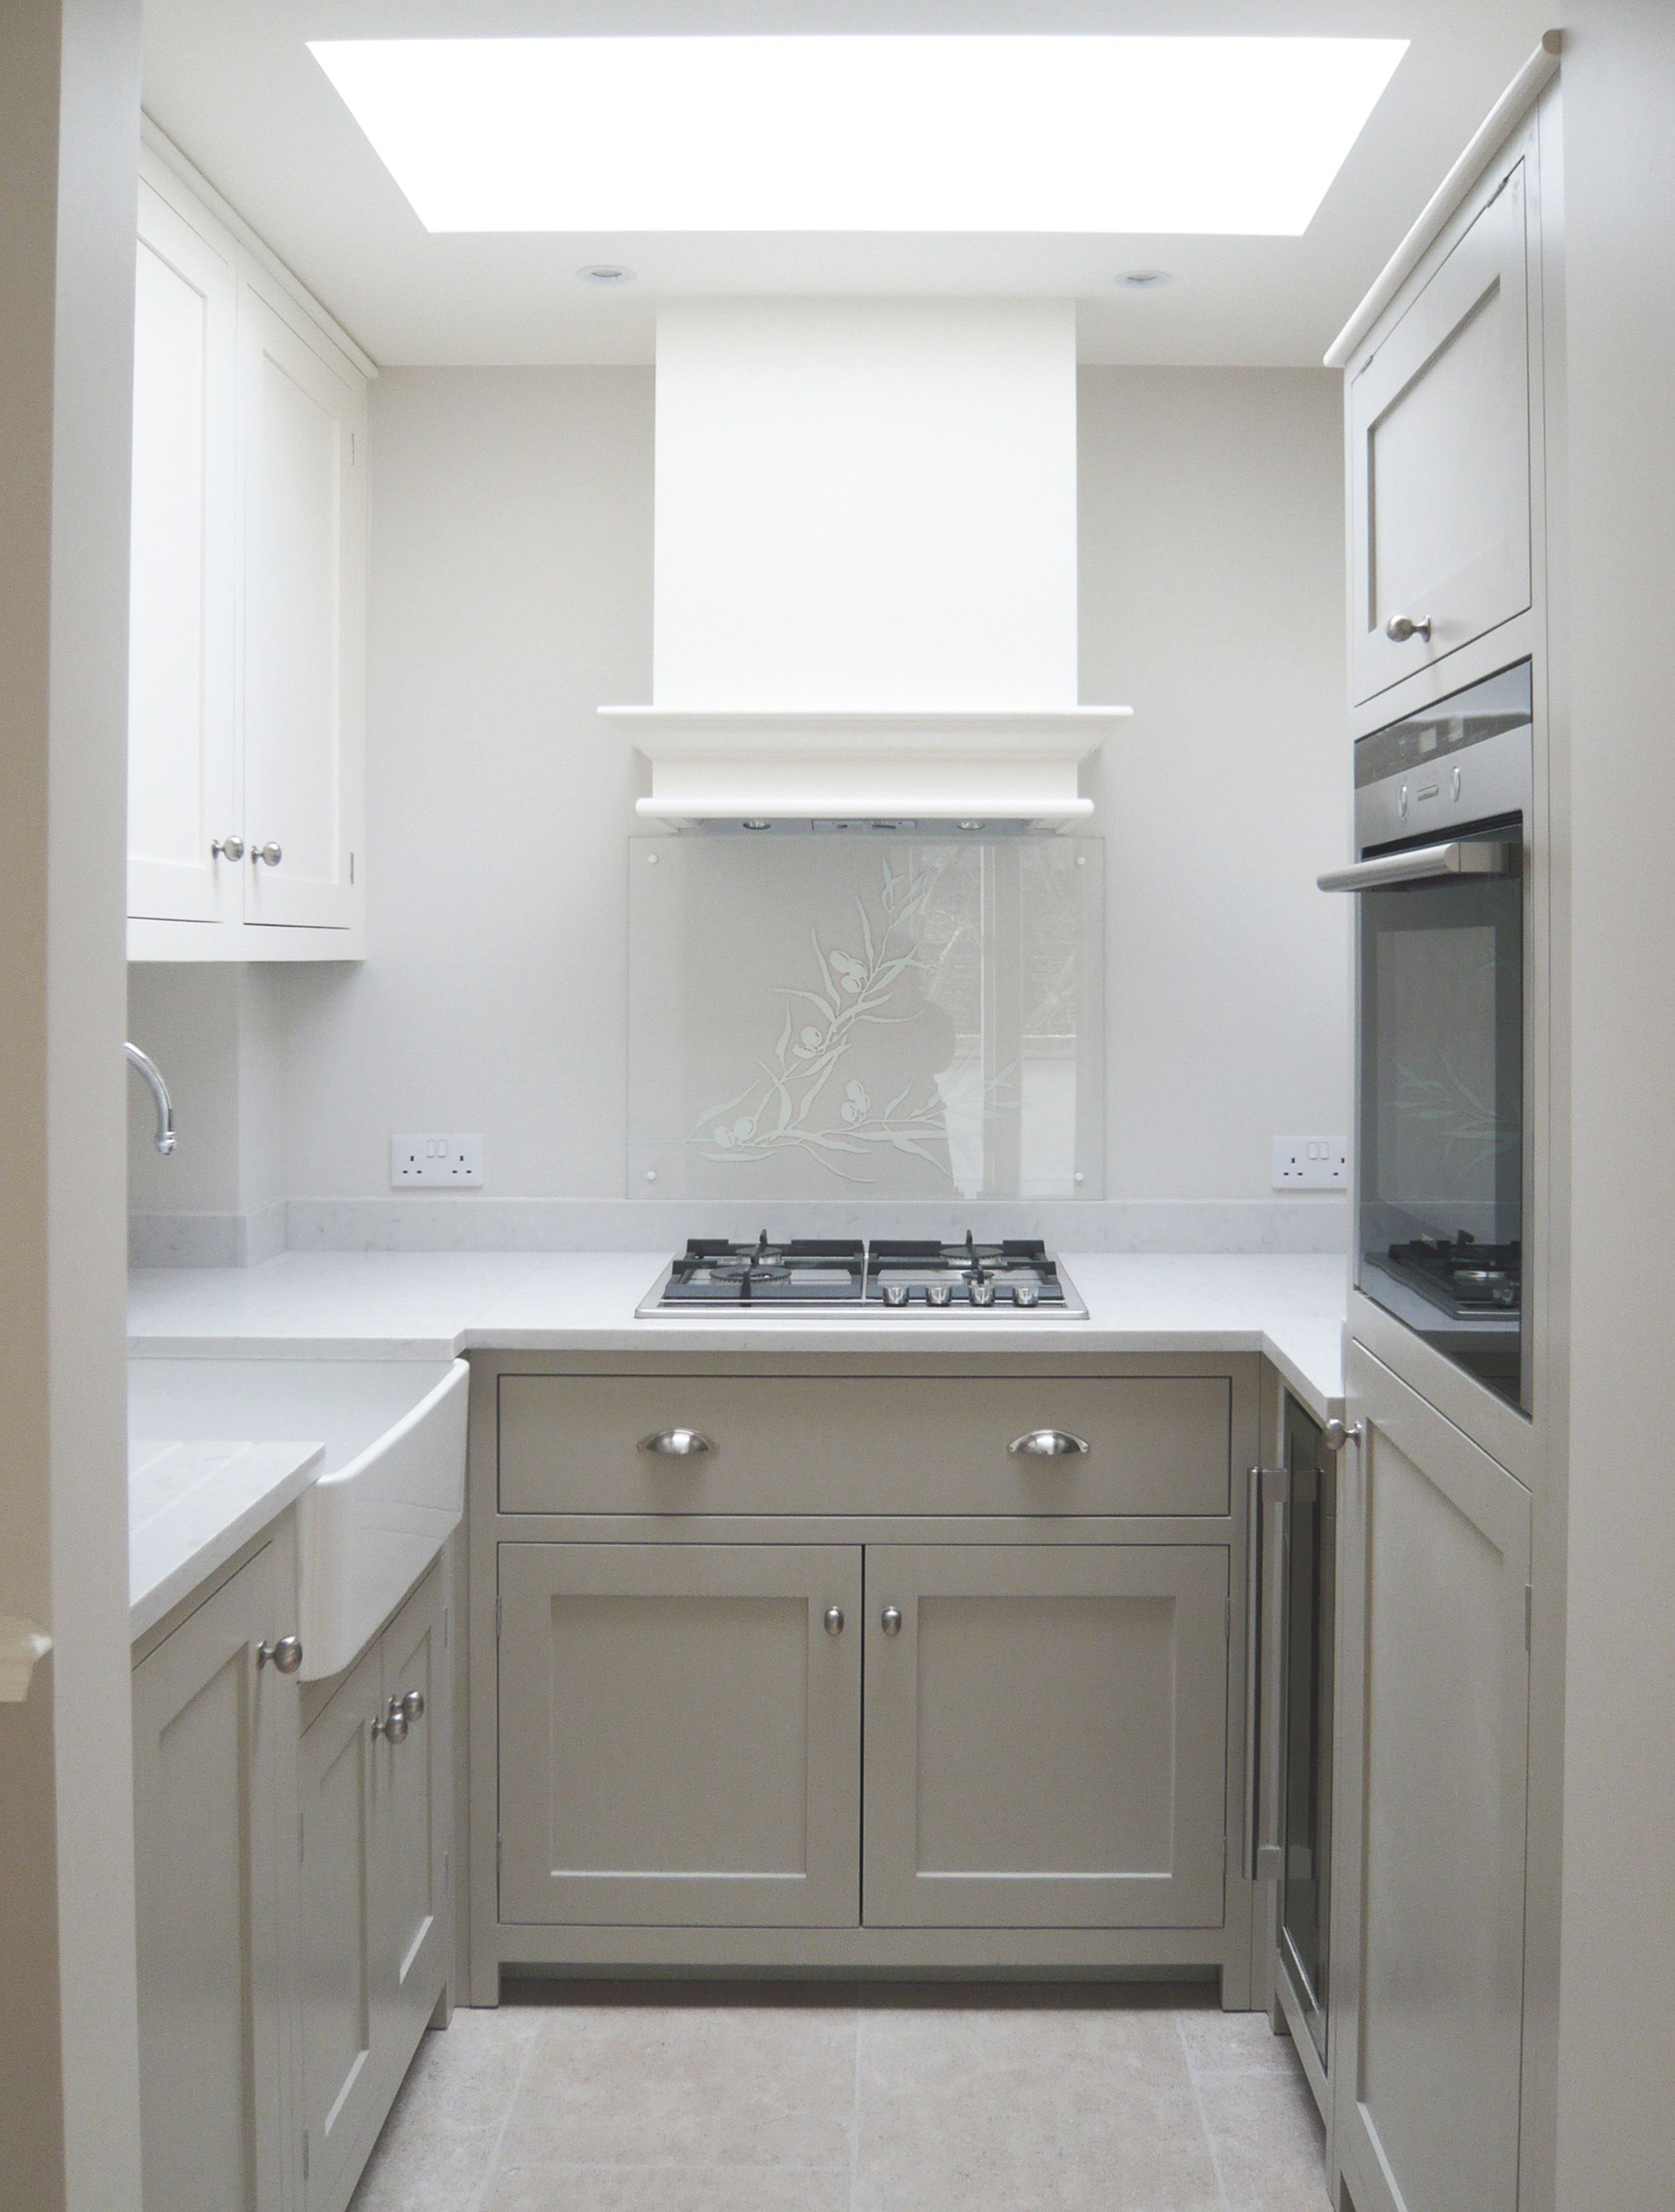 Small cookers for small kitchens - A Spacious Small Space In Holland Park